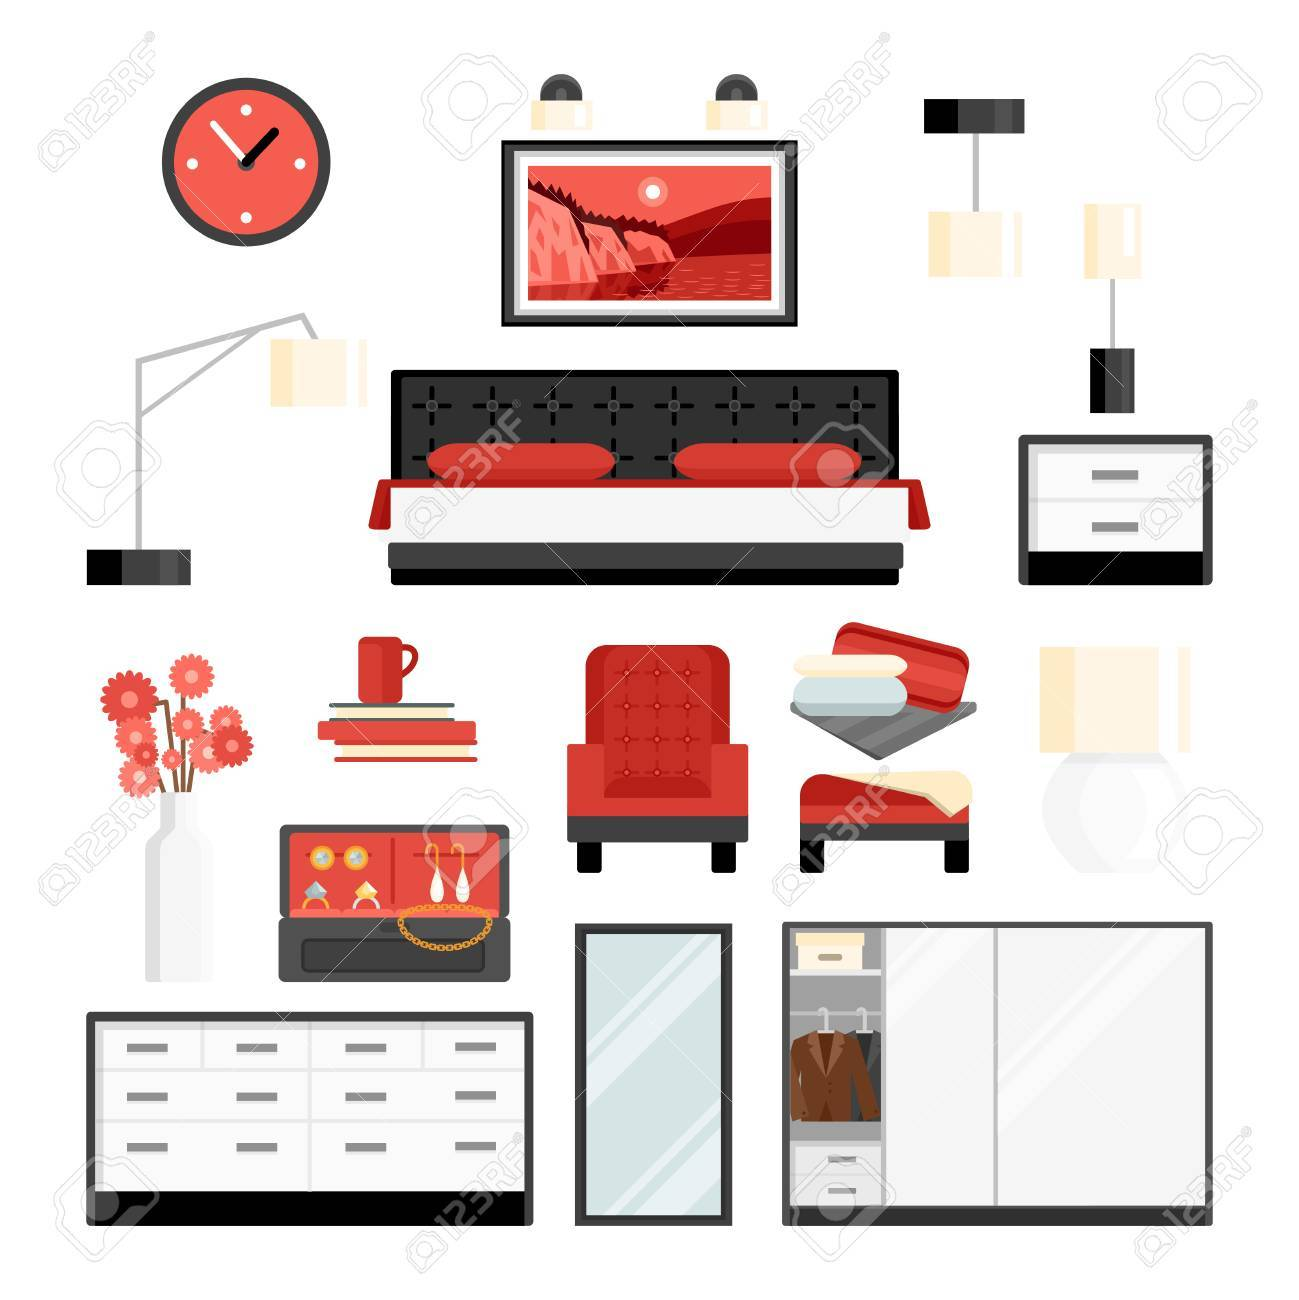 bedroom furniture clipart. bedroom furniture and accessories watch lamp decoration flat color decorative icon set isolated vector illustration clipart